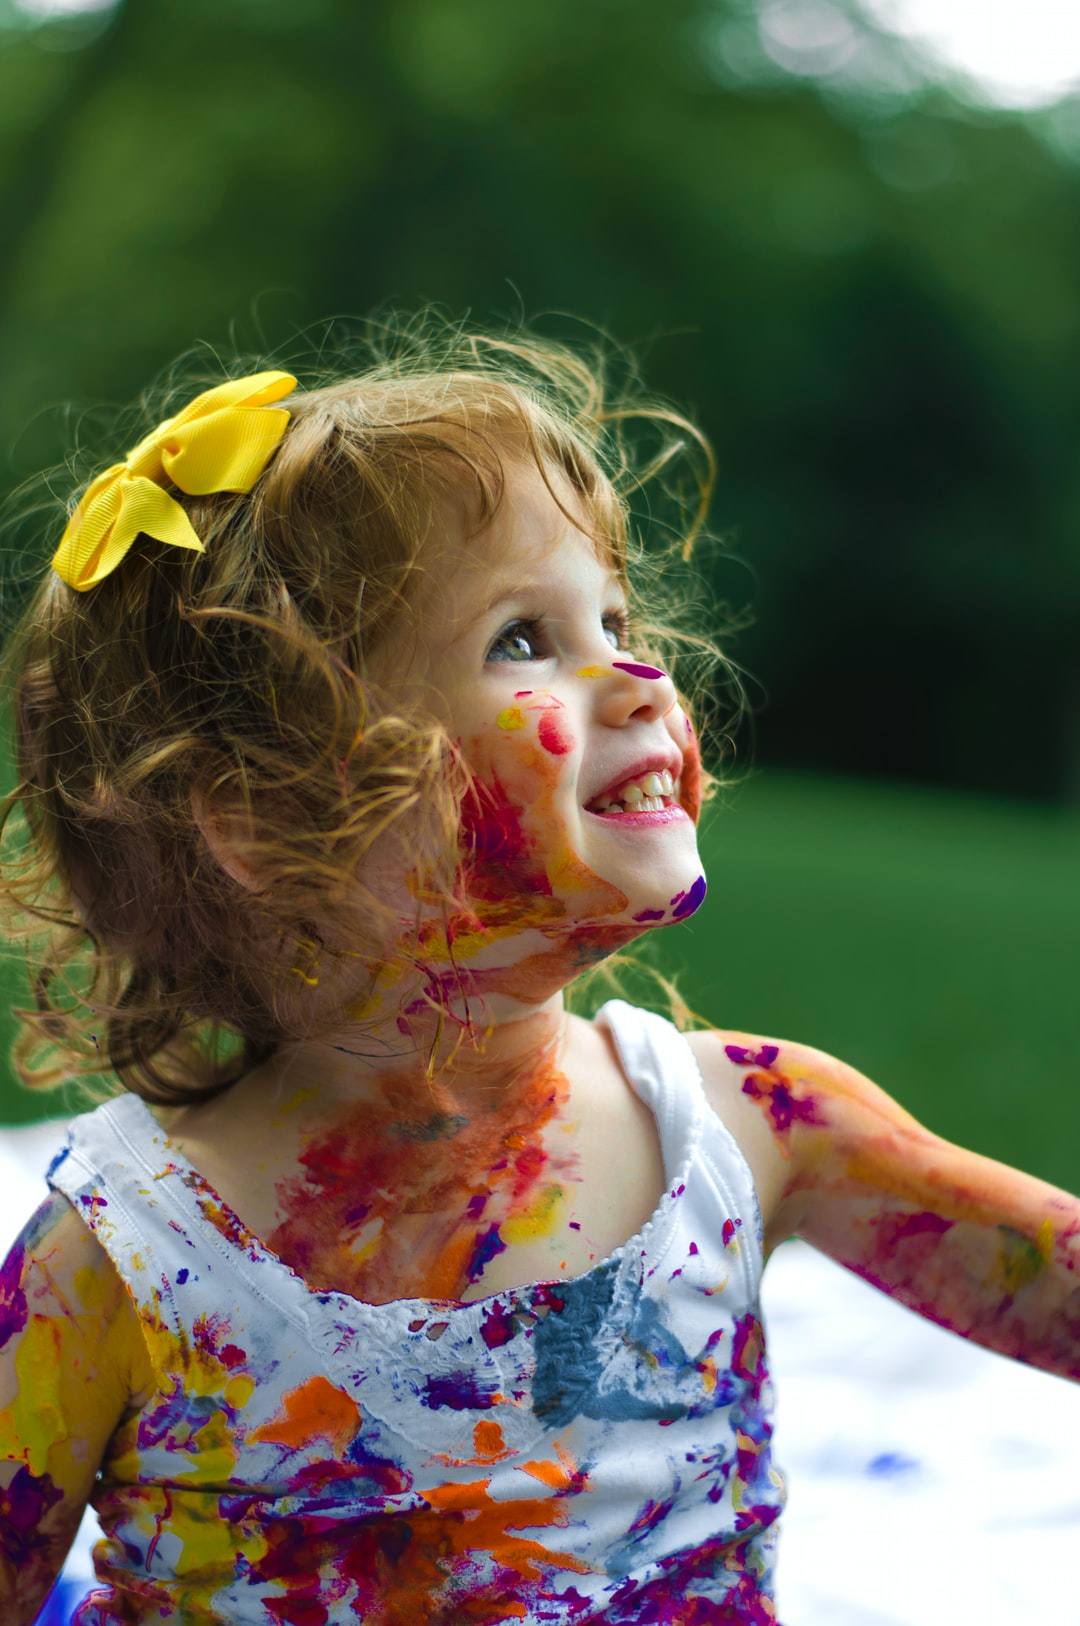 This is two-year-old Malki, her name means Queen in Yiddish. We were at the park playing with paint and bubbles and this shot was a remarkably lucky one since toddlers move so fast. This photo is important to me because it captures her innocence and reminds me how happy and carefree I was that day, hanging out with her.